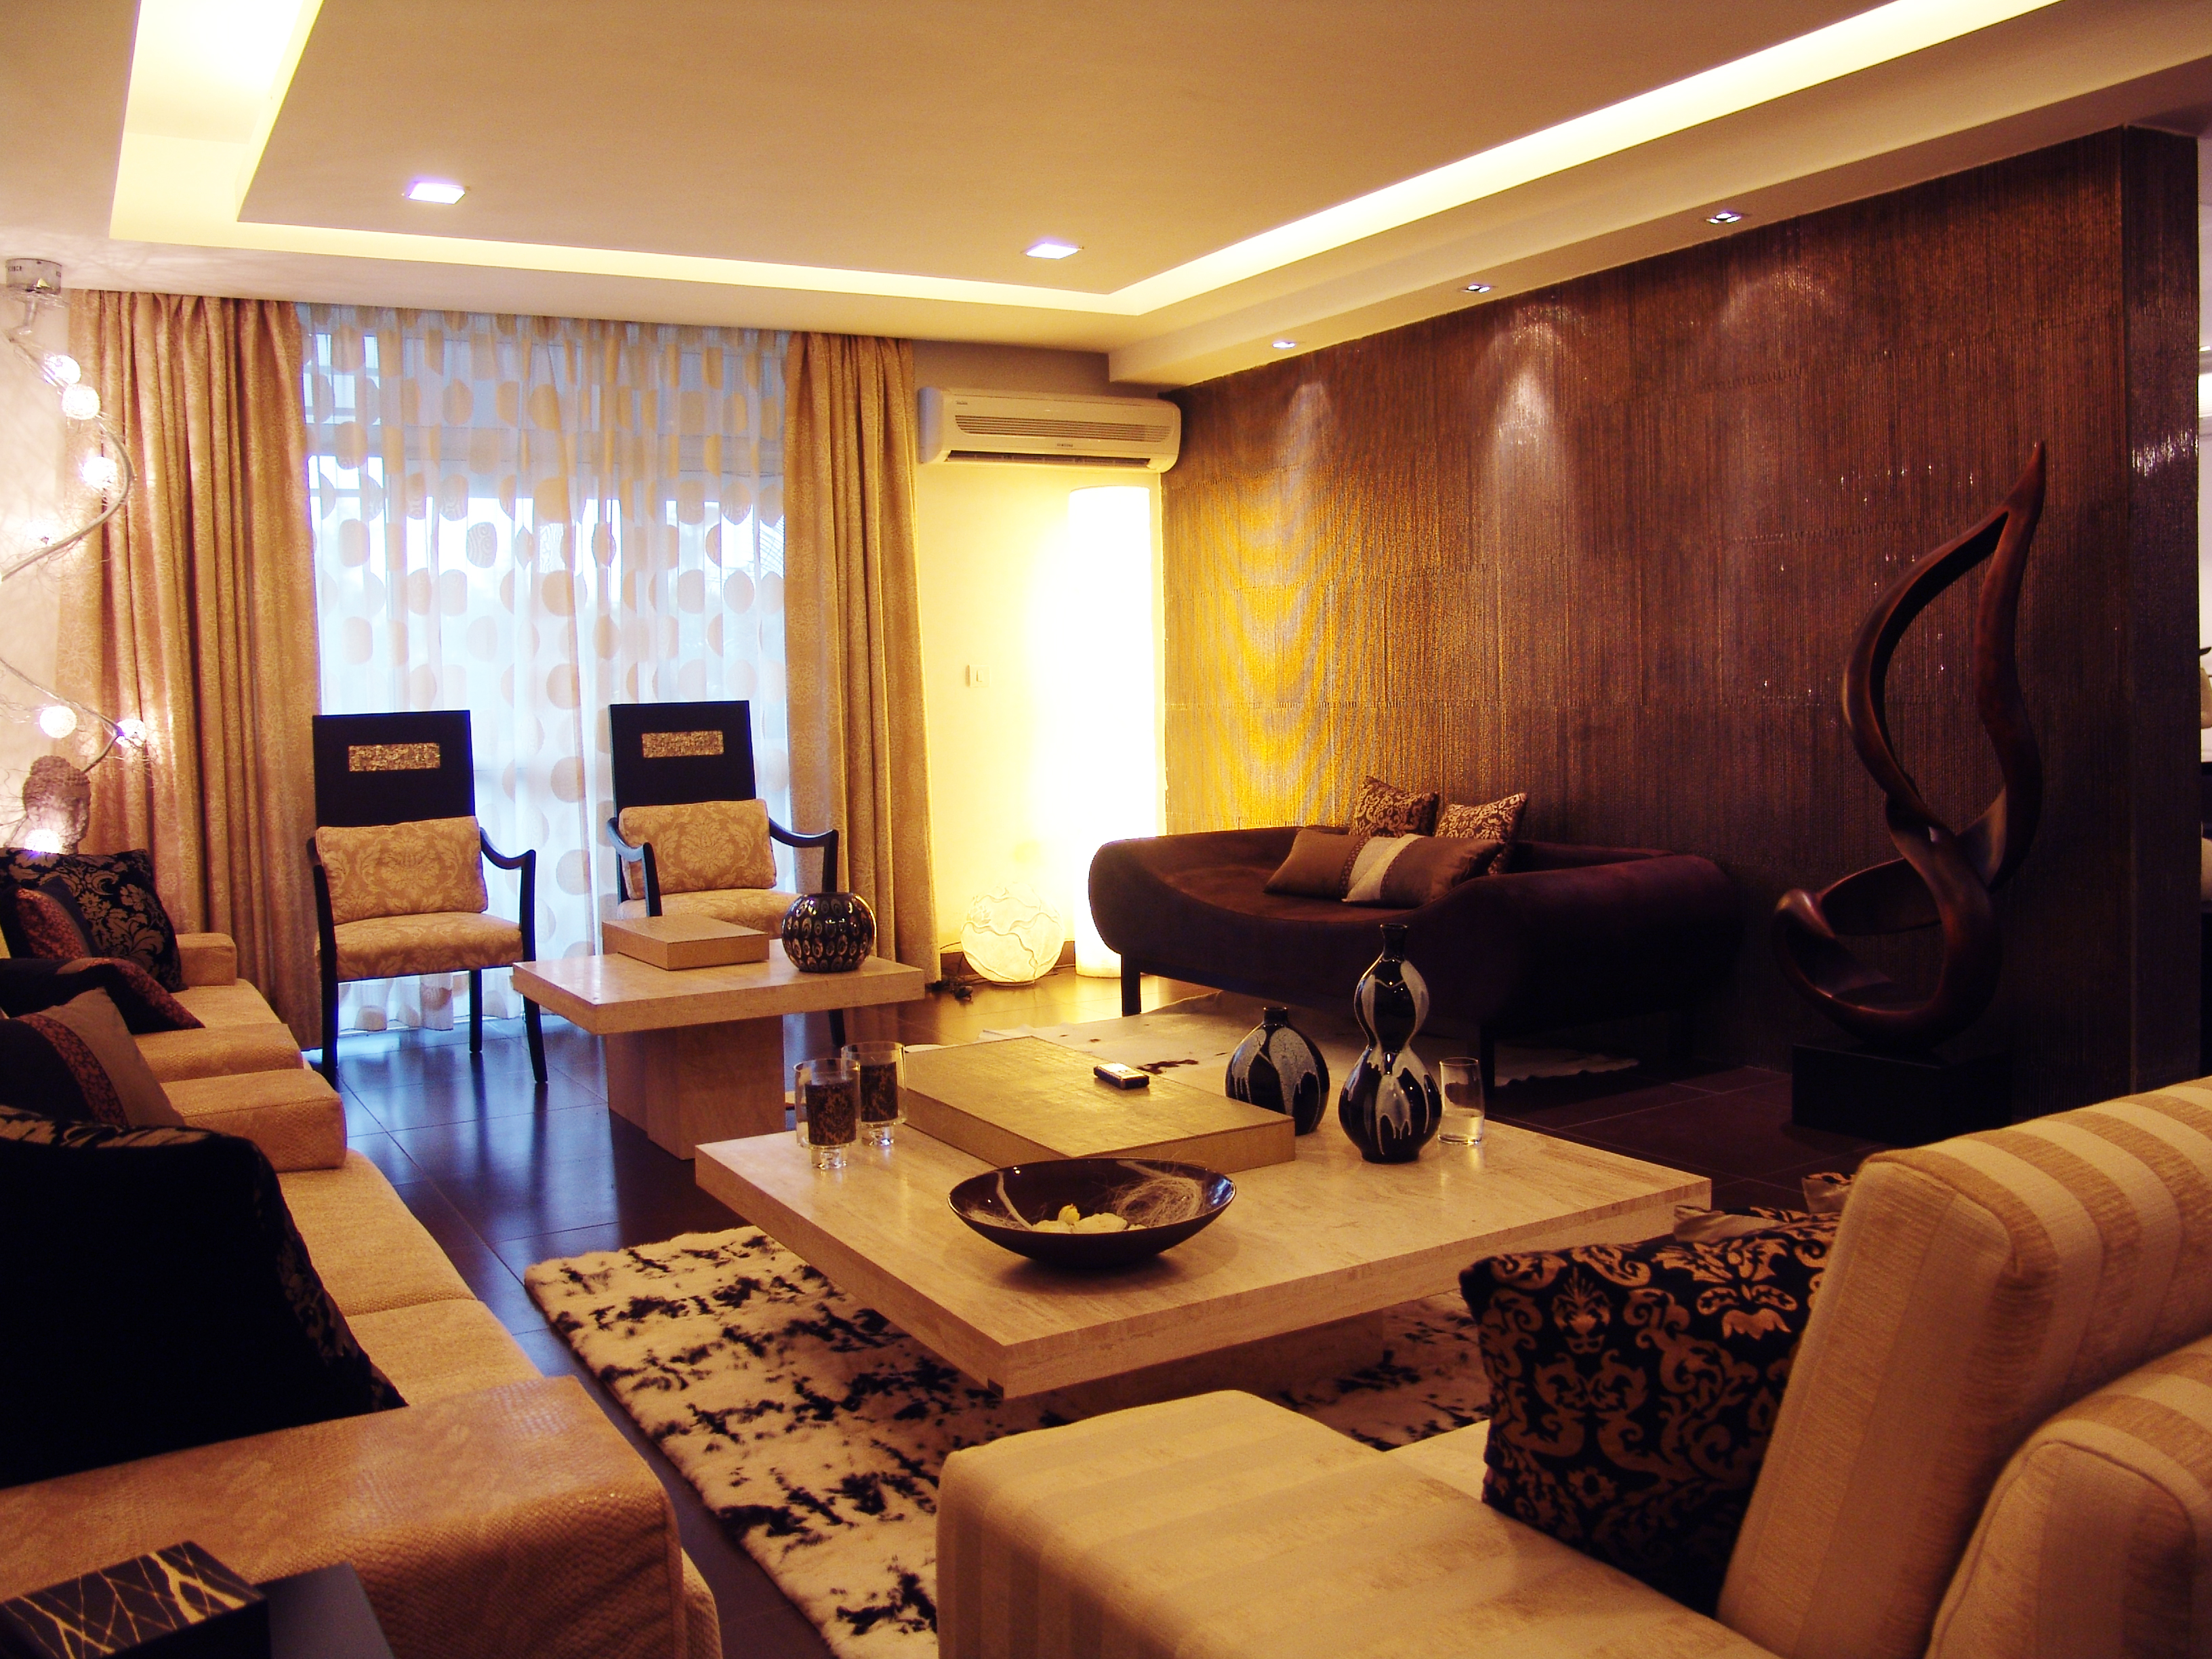 Home Makers Interior Designers & Decorators Pvt. Ltd. in Andheri